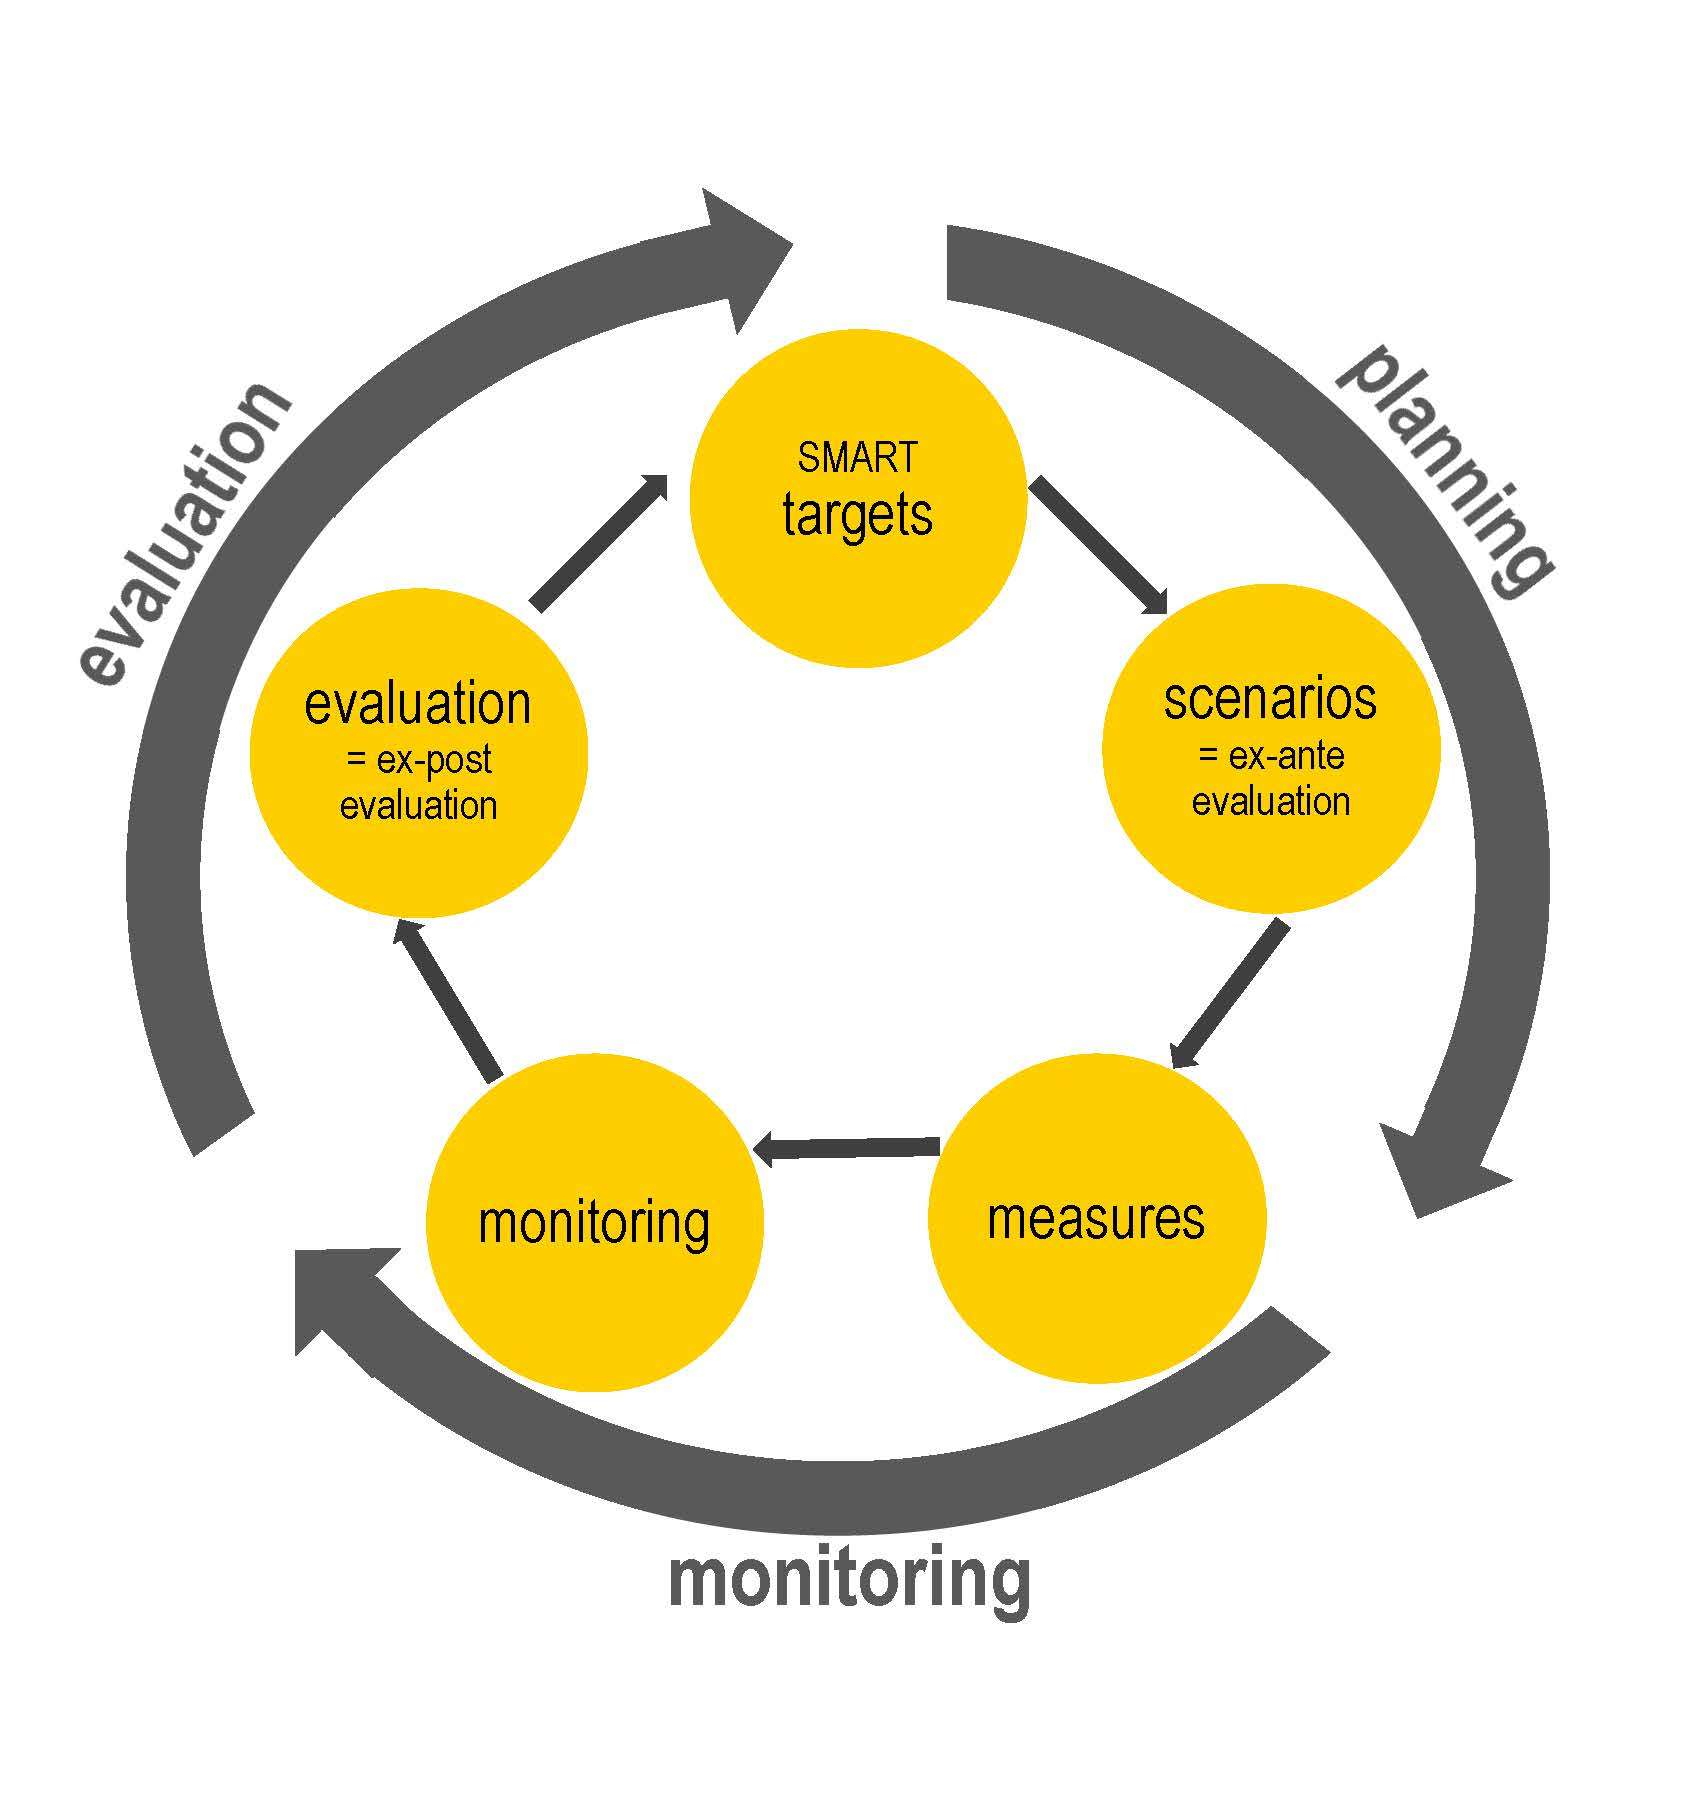 Monitoring and evaluation sump challenges sump monitoring and evaluation source city of dresden maxwellsz